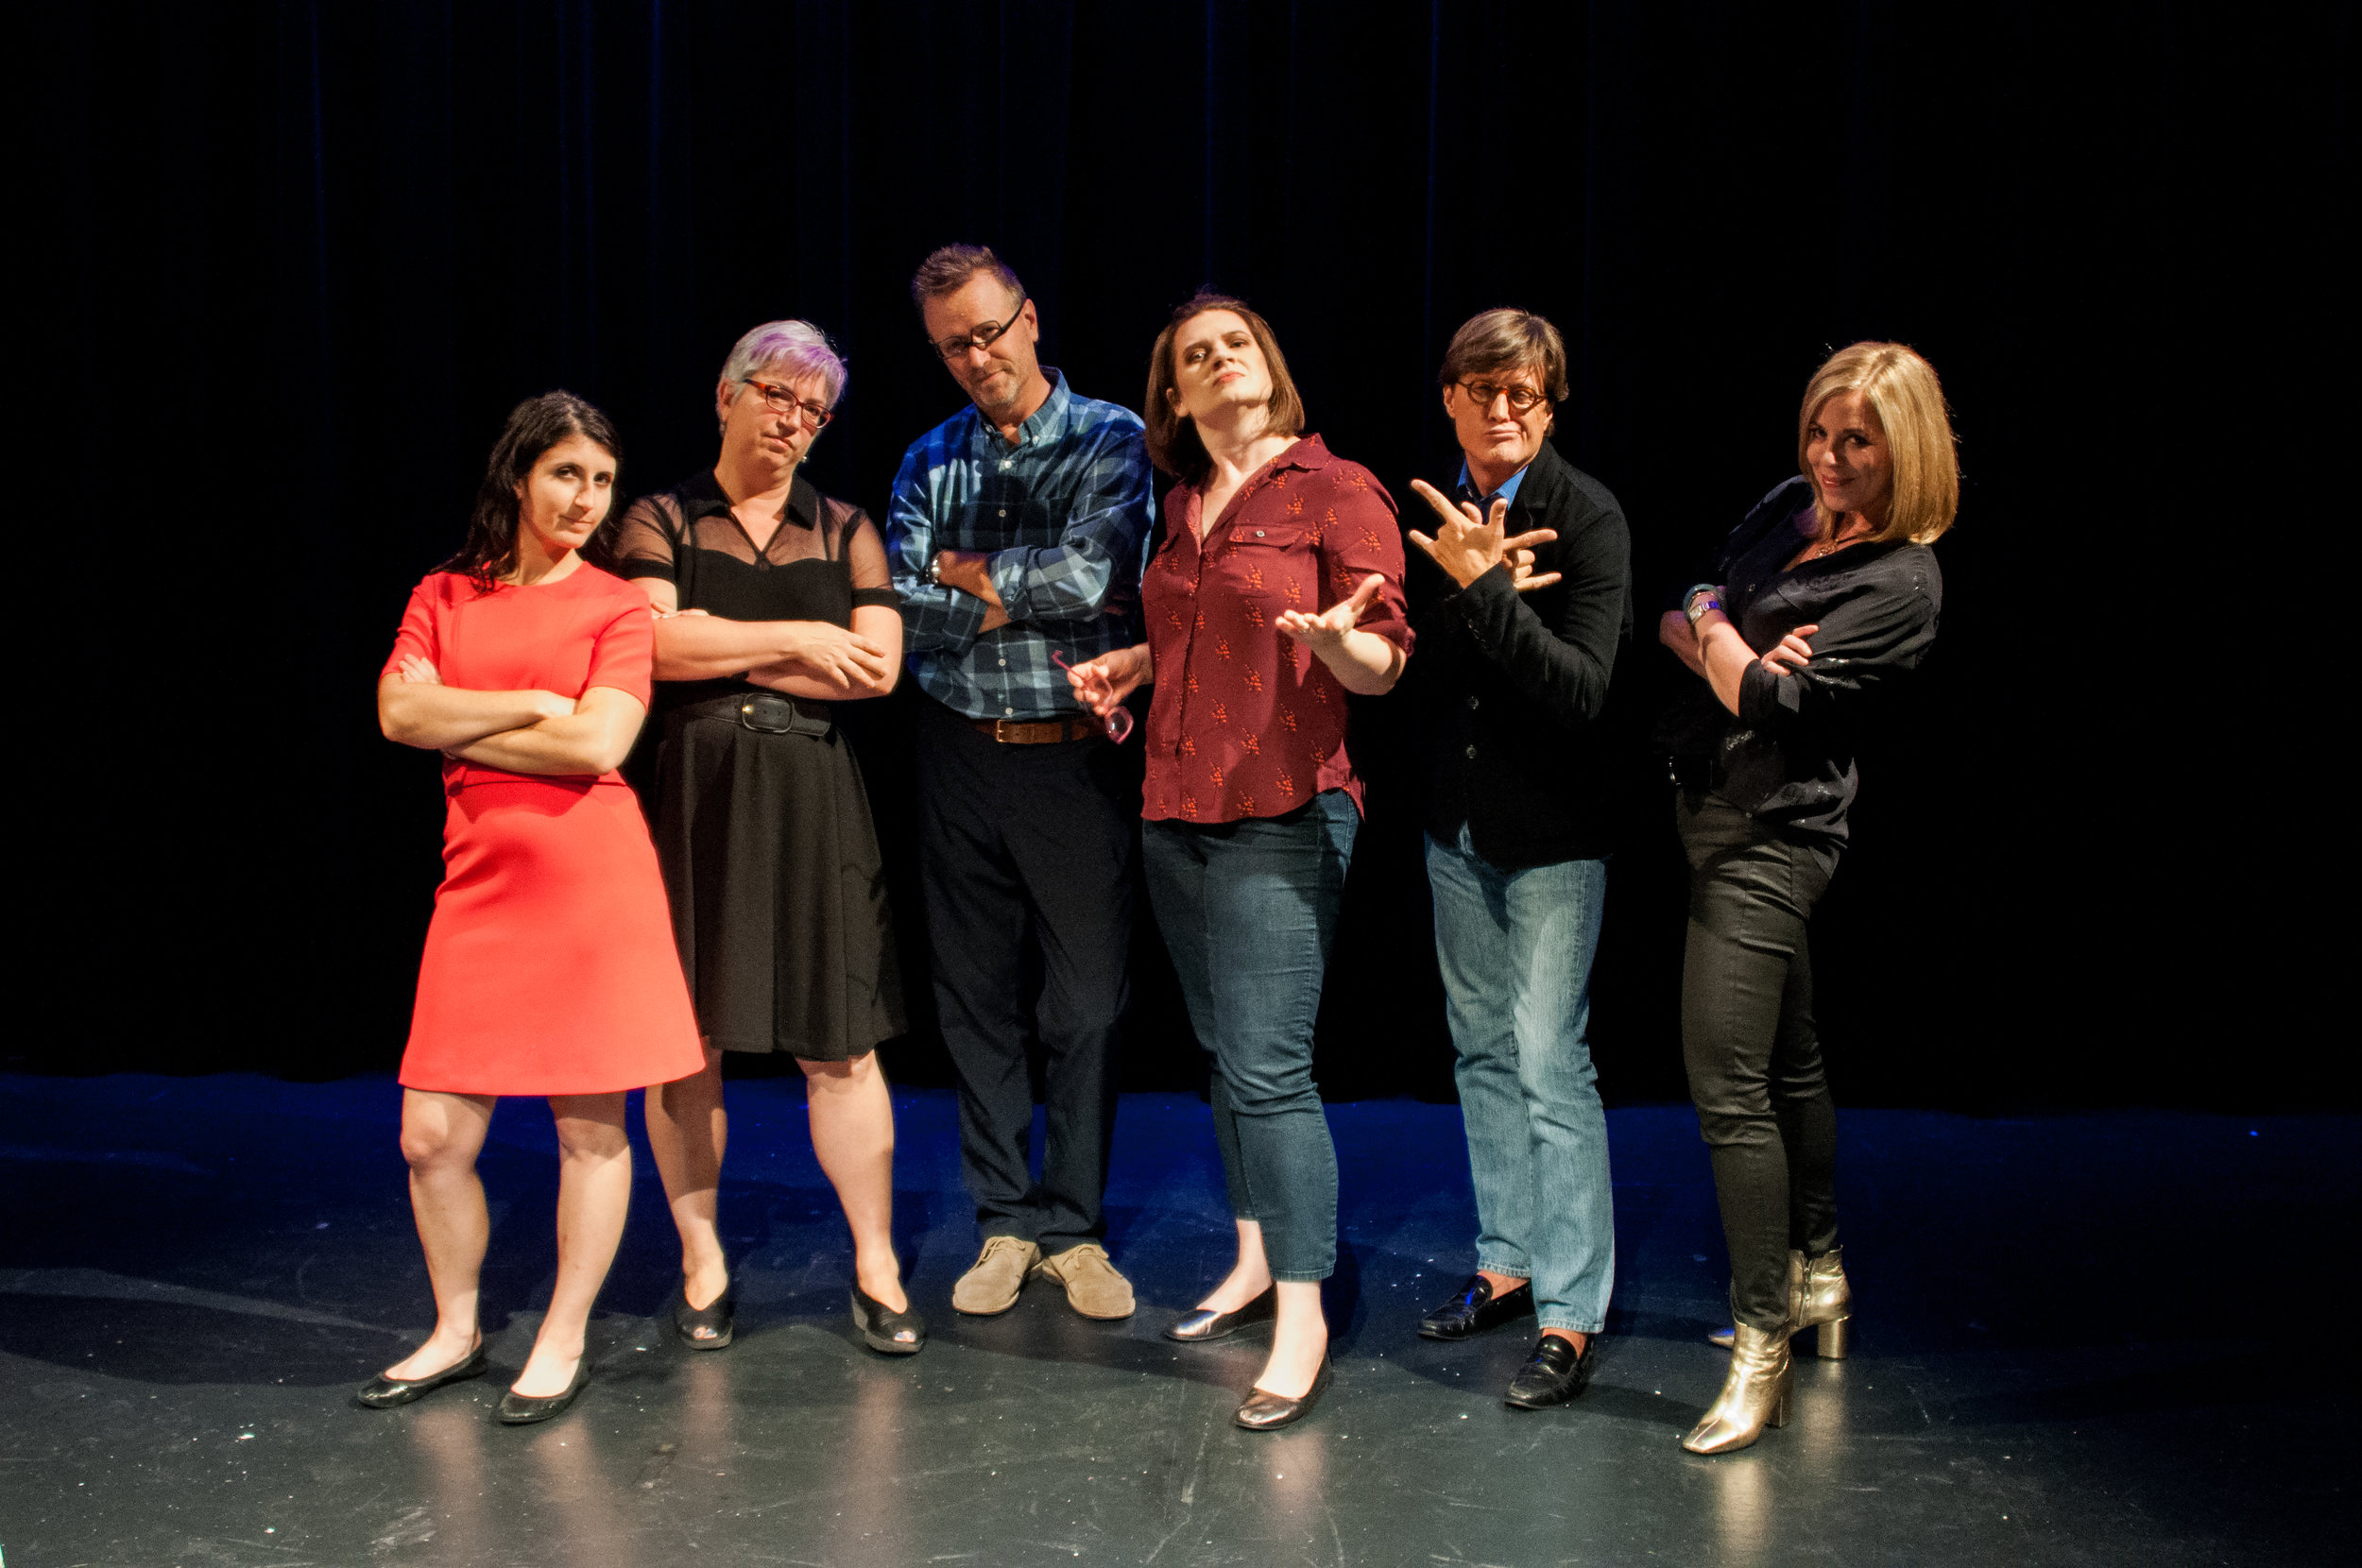 Leila Sales, Susanna Einstein, Ben Cosgrove, Emmy Laybourne, Greg Cope White and Alyson Noel exhibit a lot of attitude before the show on September 22, 2016.